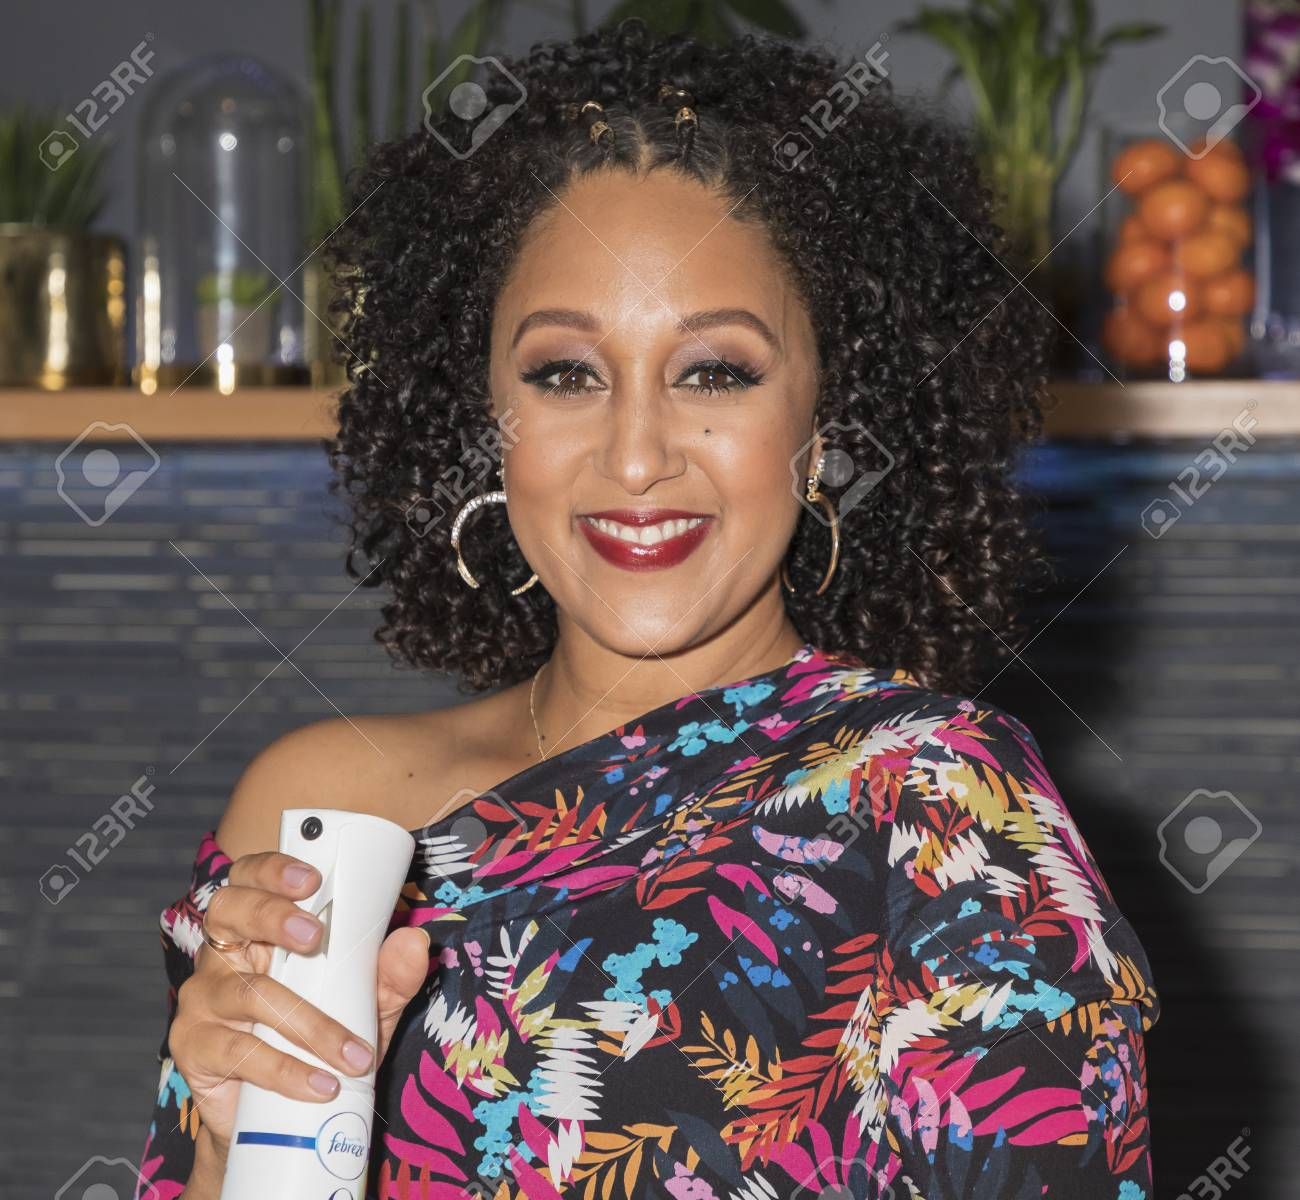 Celebrites Tamera Mowry nudes (98 foto and video), Ass, Cleavage, Boobs, cameltoe 2018